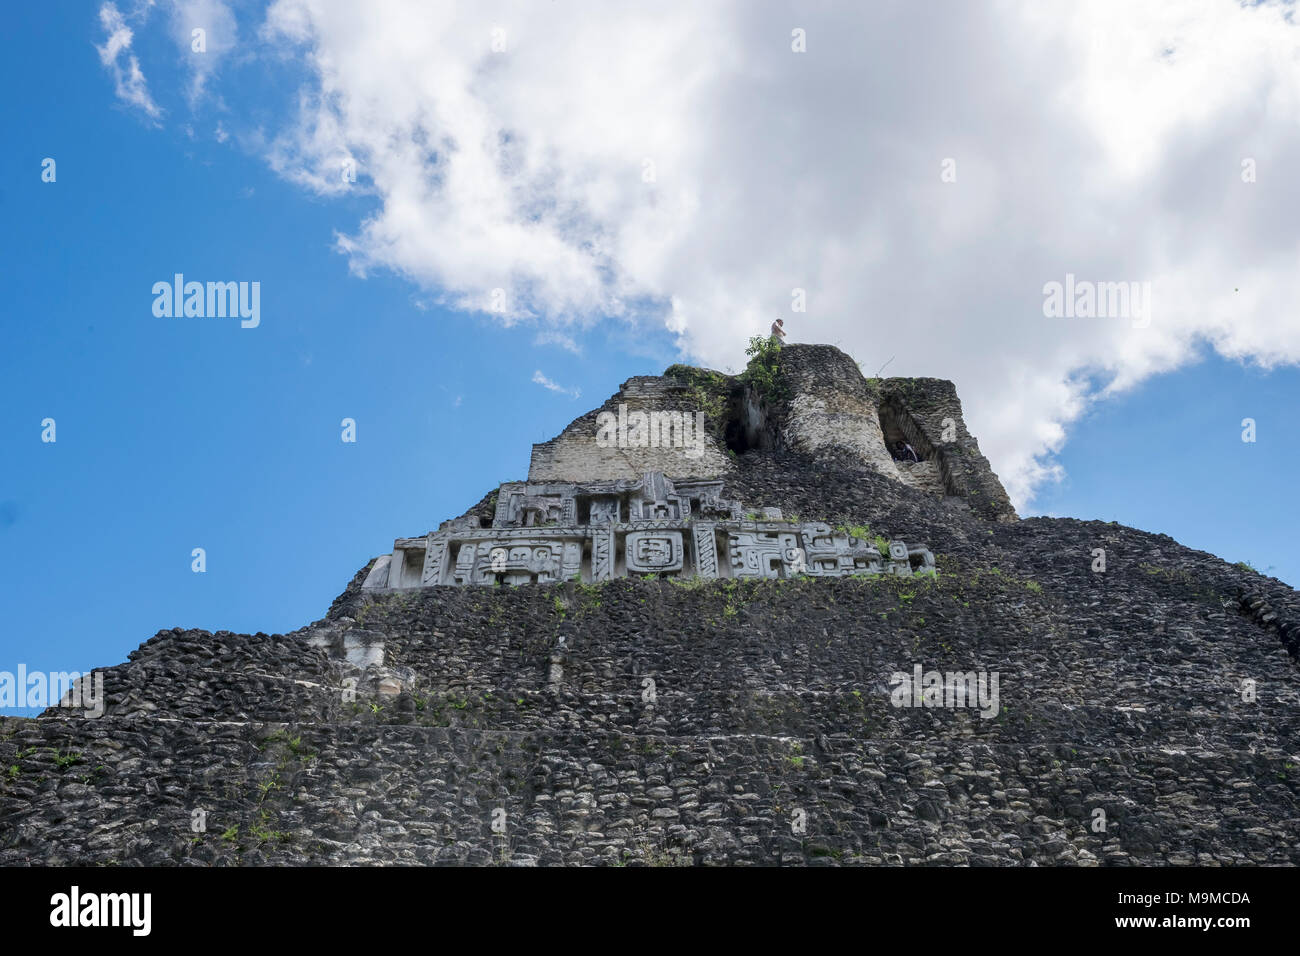 Ancient Mayan temple ruins and structures in Xunantunich, Belize Stock Photo